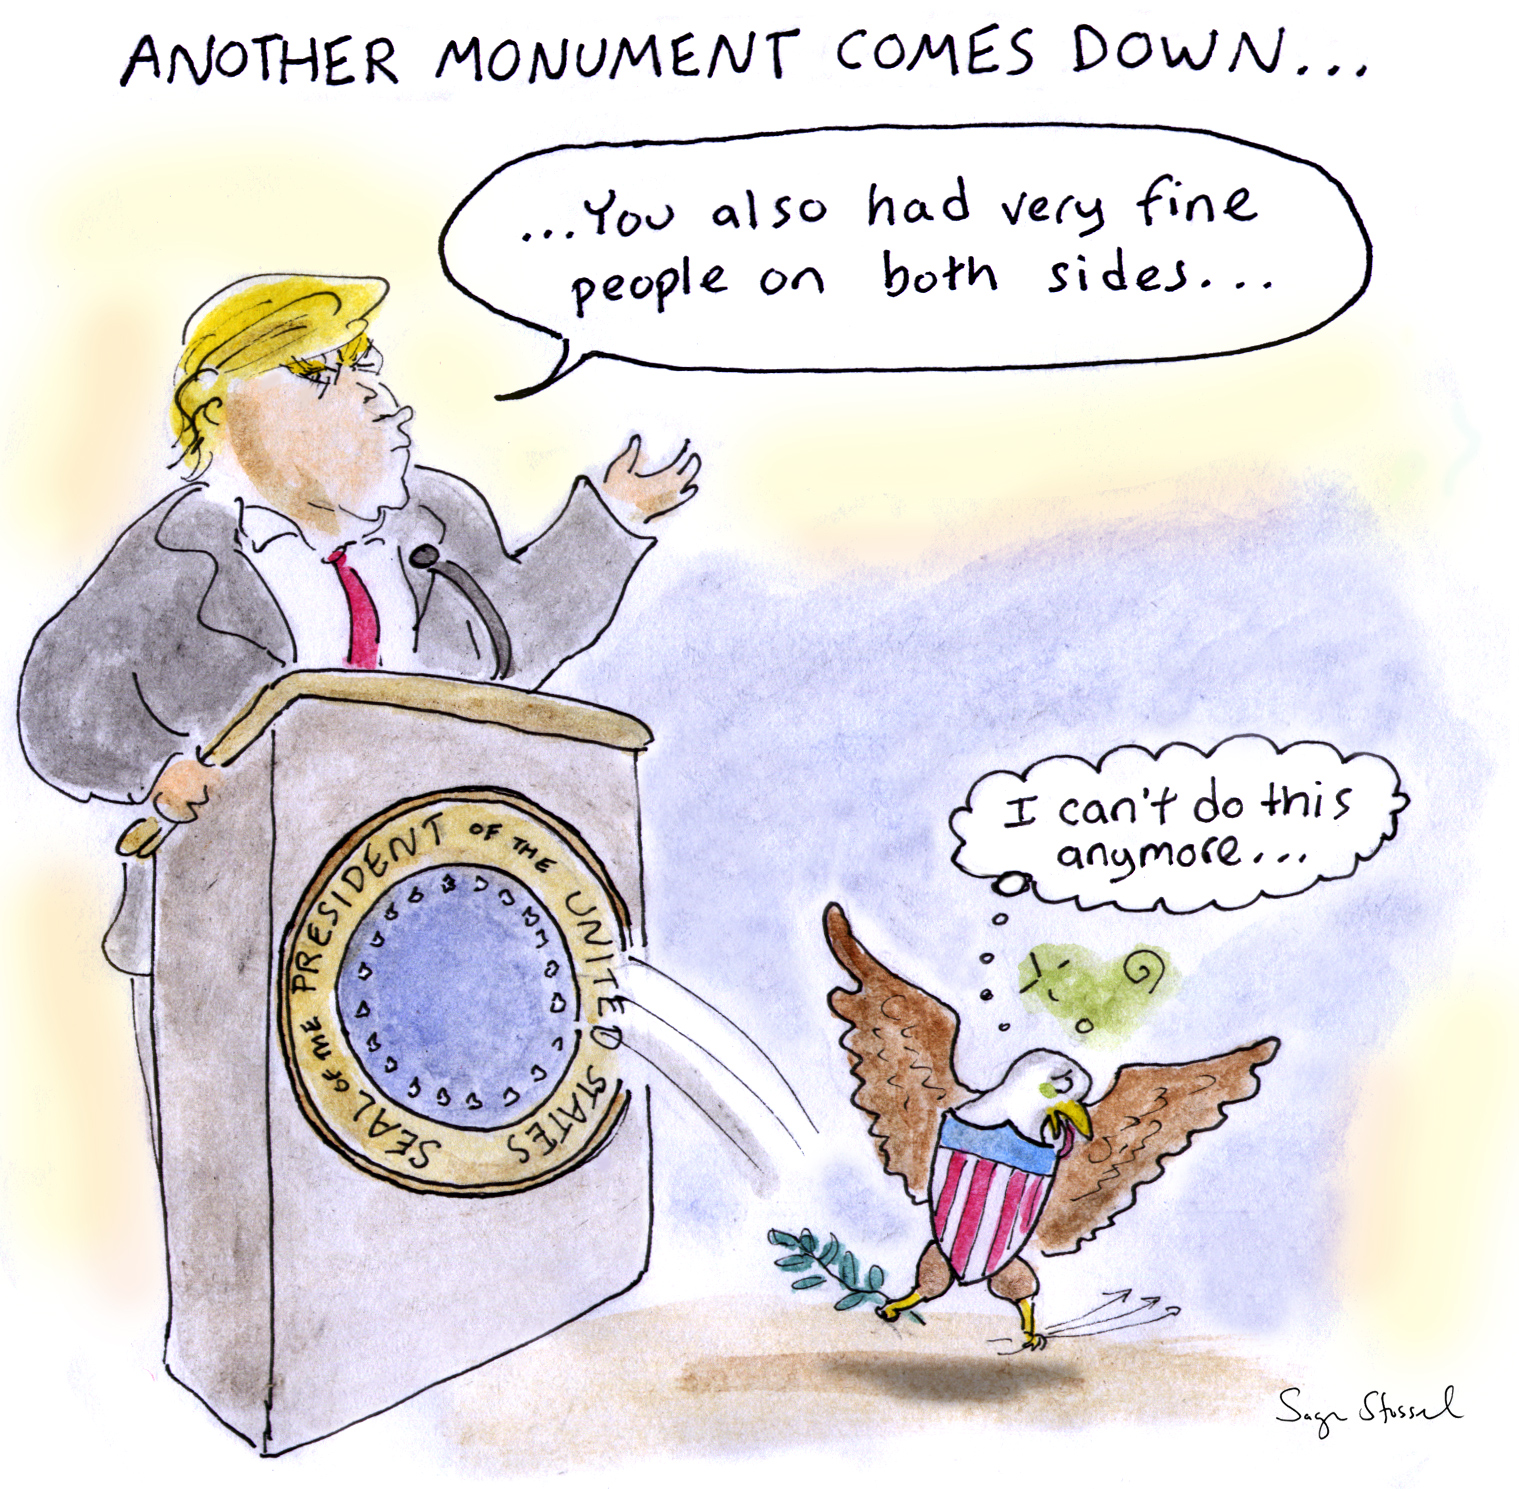 trump press conference, charlottesville, both sides, white supremacists, nazis, civil war monuments, presidential seal, cartoon